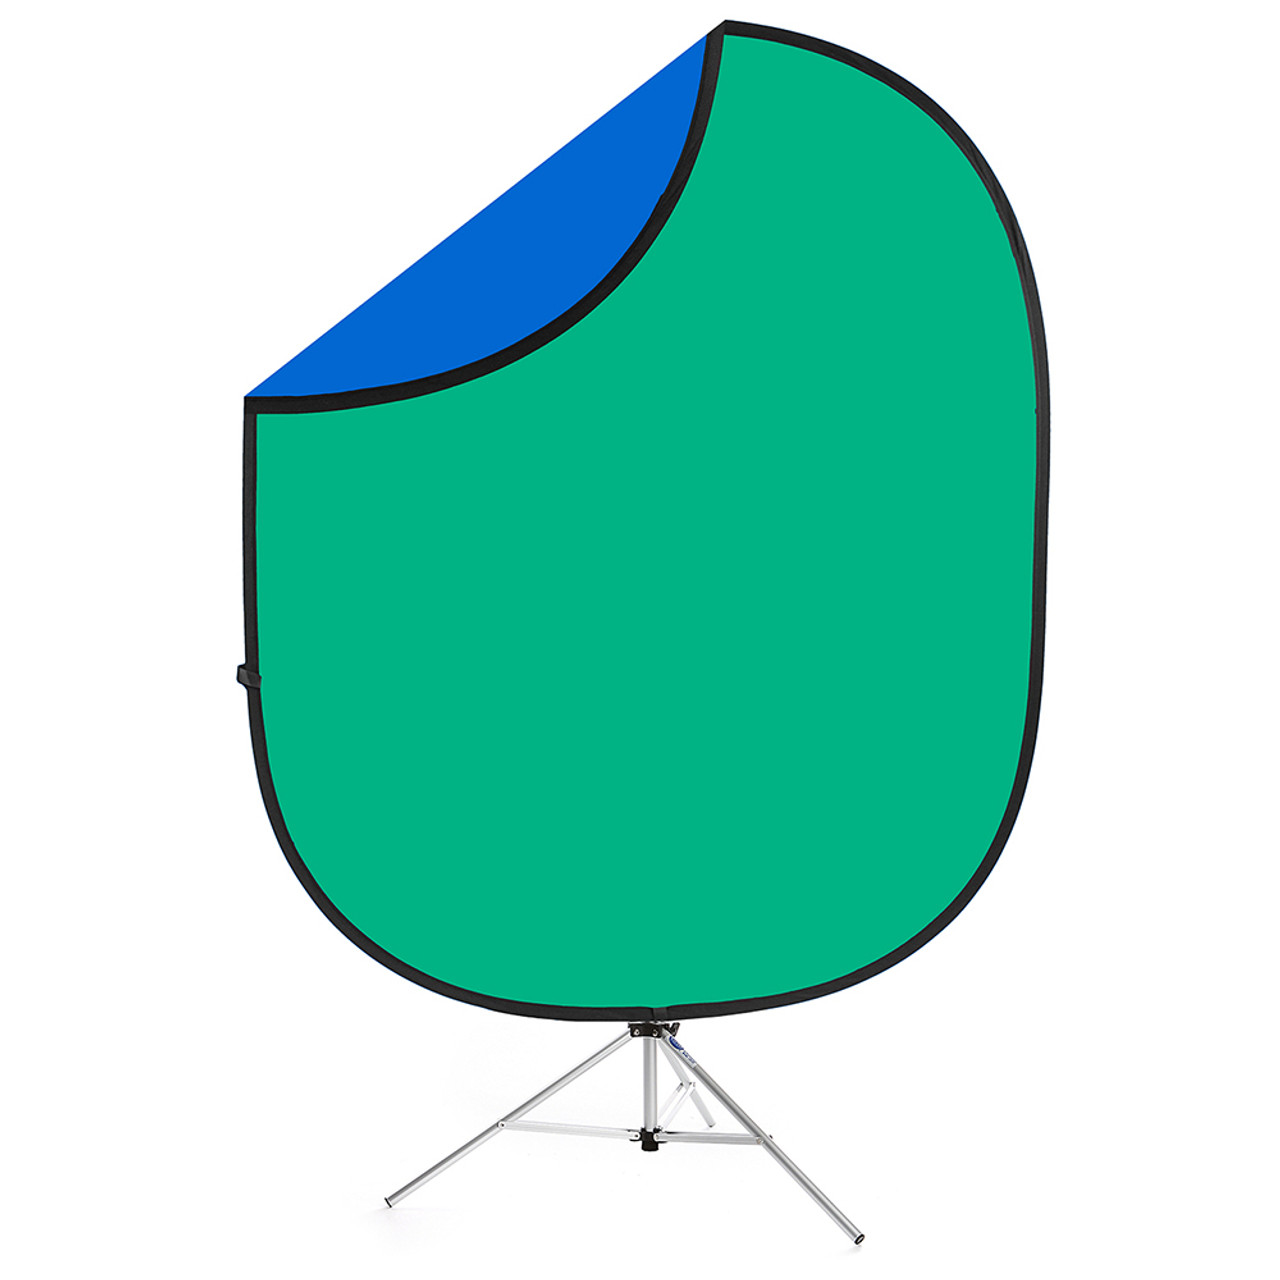 Collapsible Background Chromakey Green / Blue, Green Screen 6'x7'